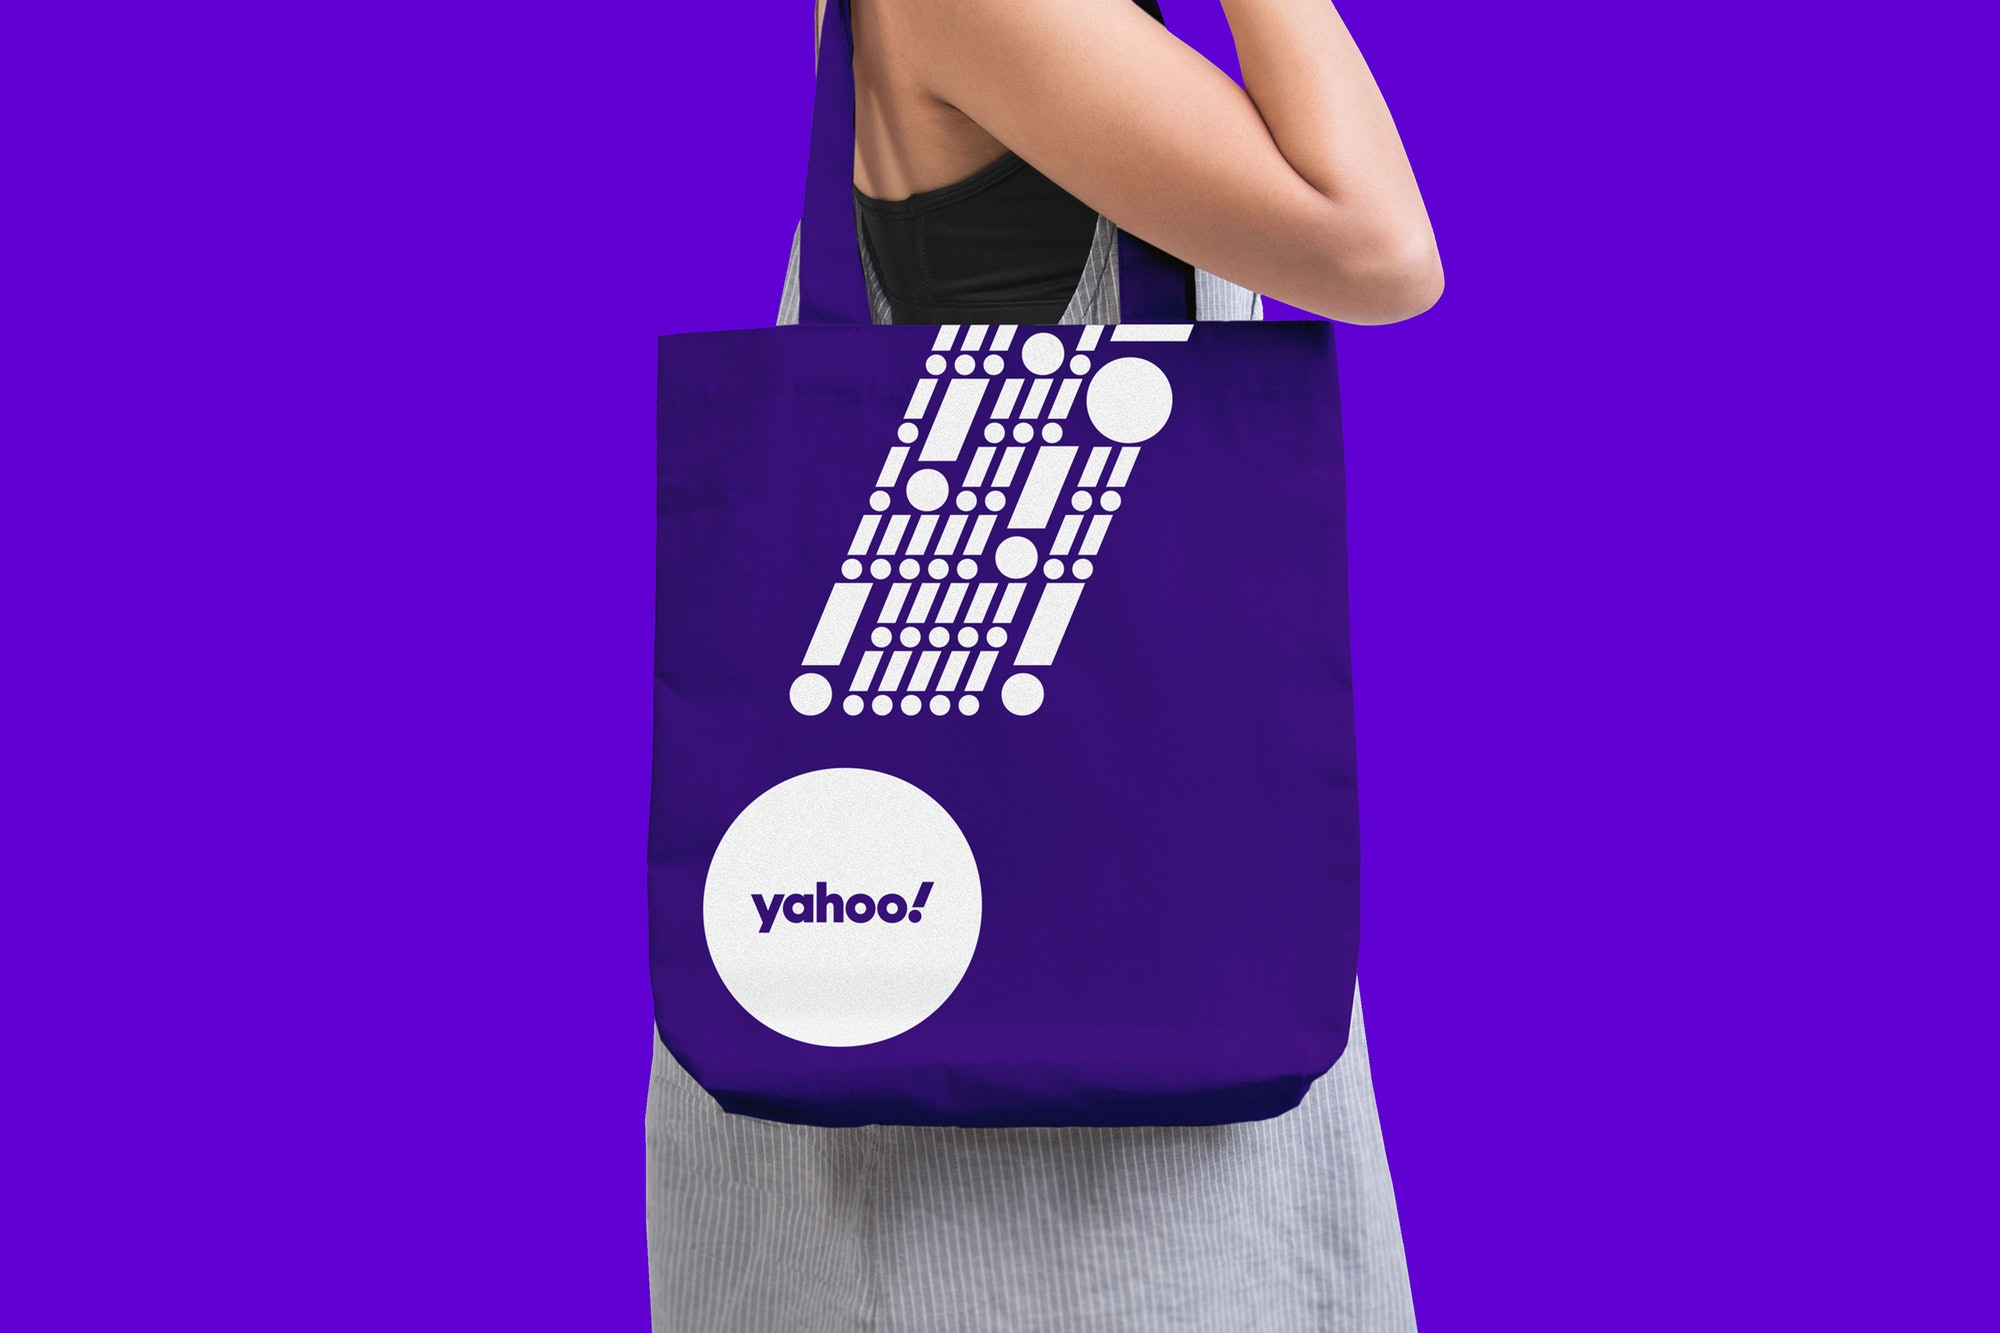 Yahoo Rebrand suggests better times ahead for the struggling internet icon